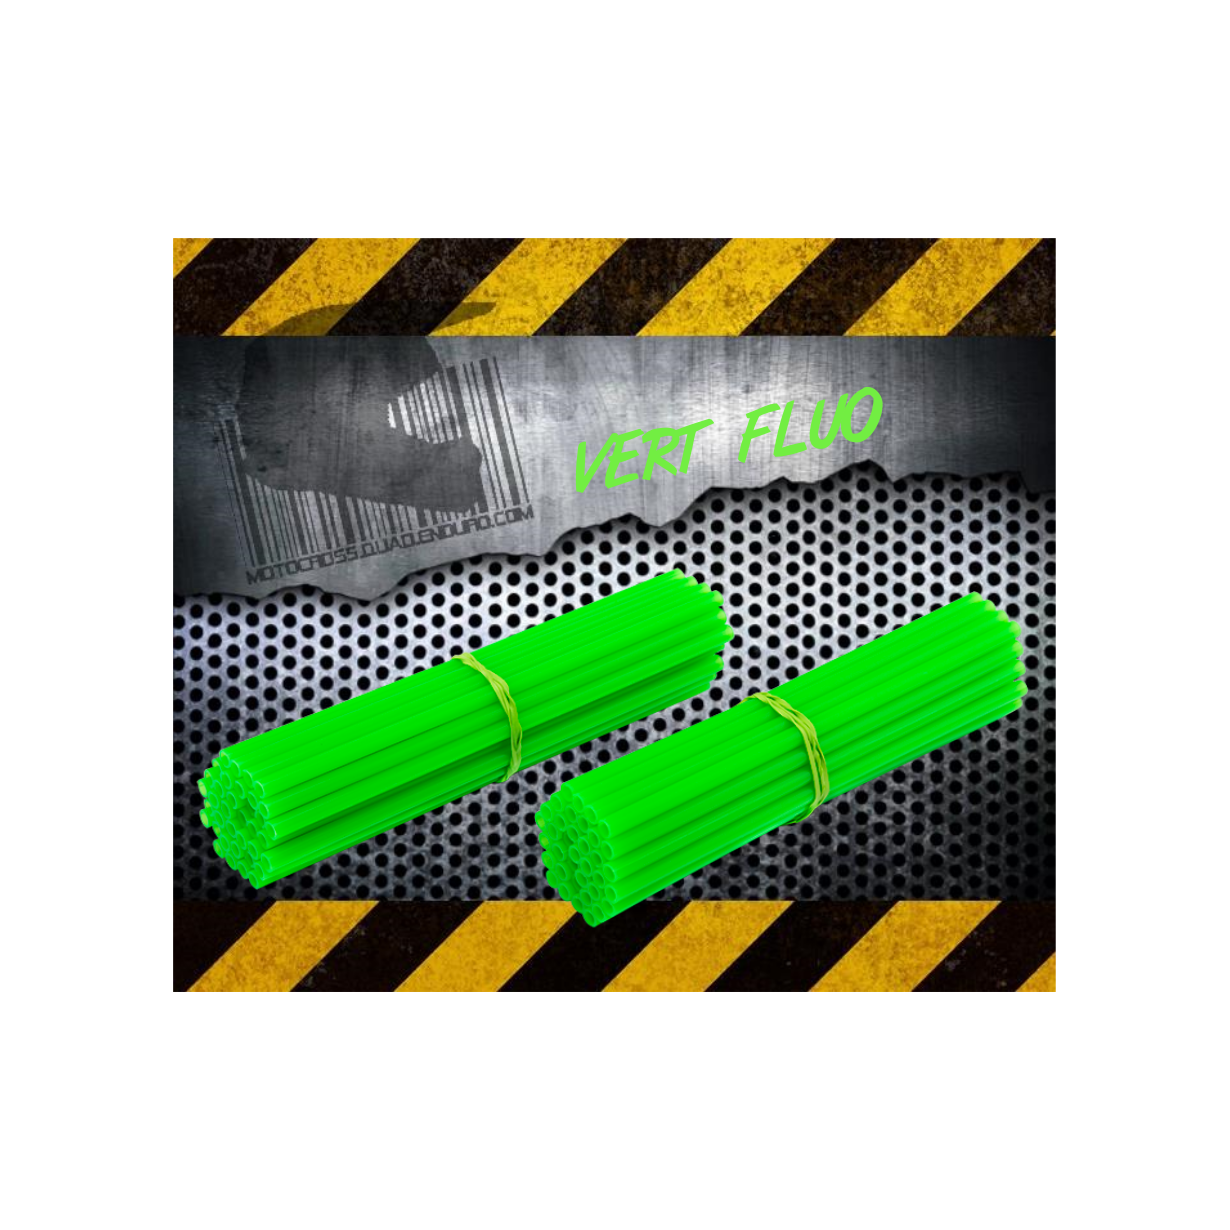 Couvres rayons vert fluo spoke coats spoke skins 2